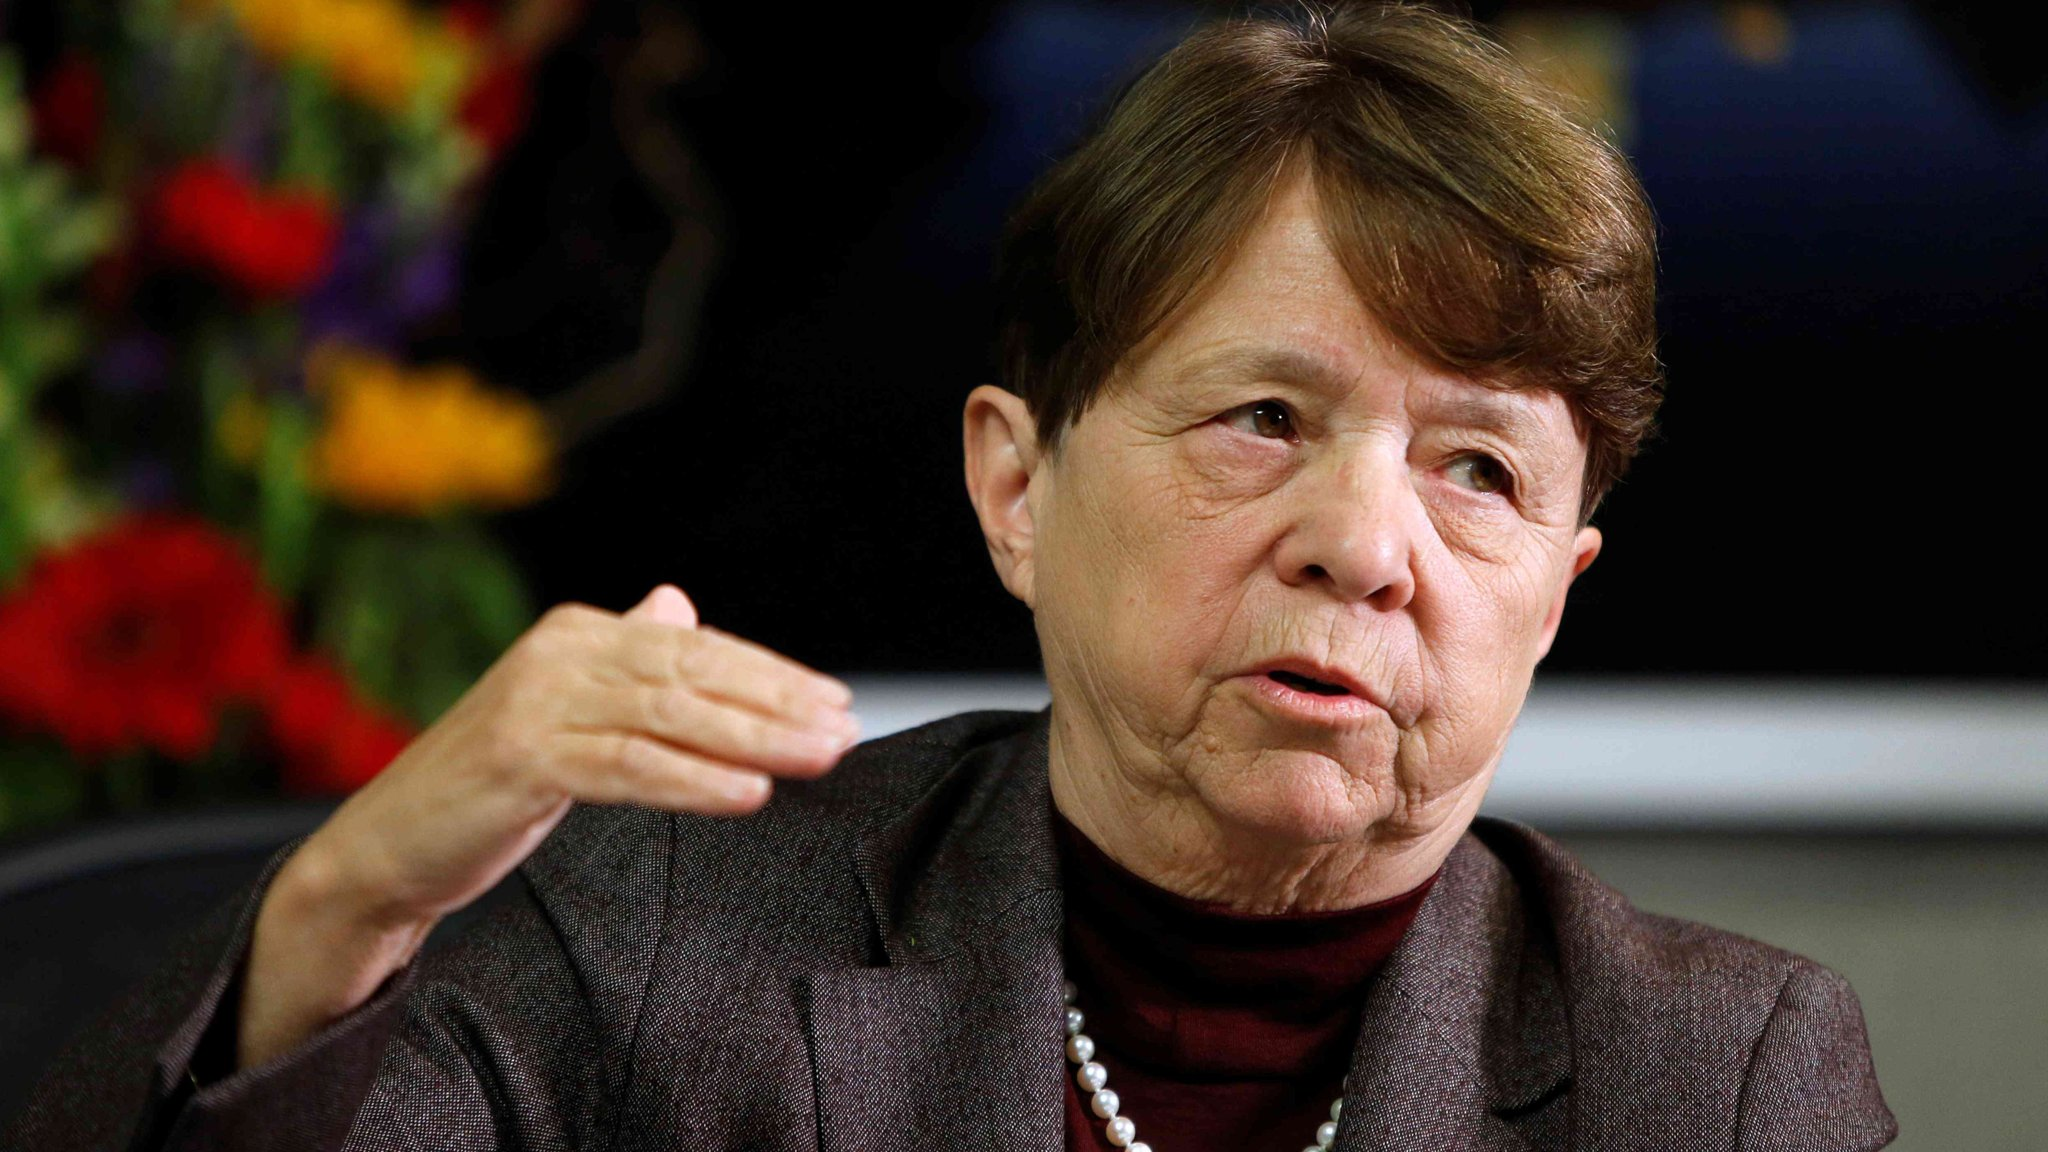 SEC chair Mary Jo White to step down